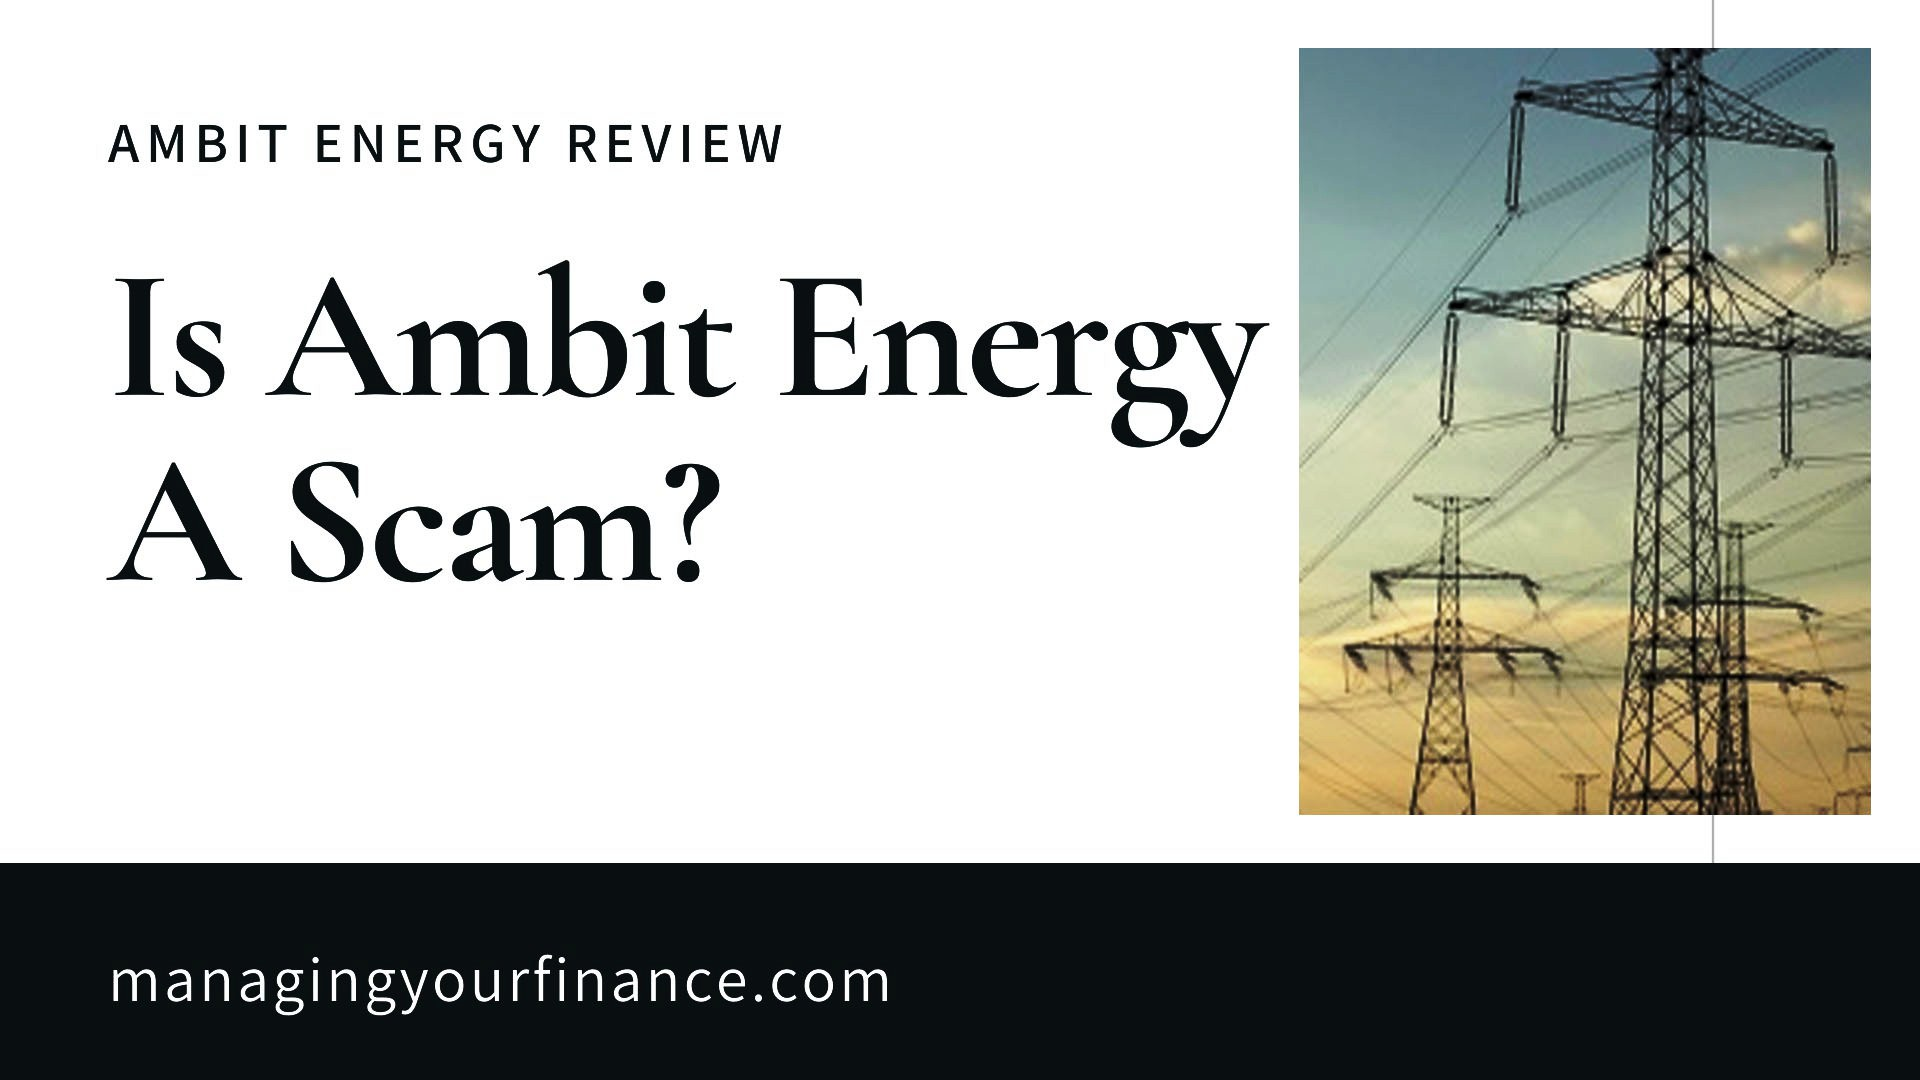 Ambit Energy Review - Is Ambit Energy a Scam